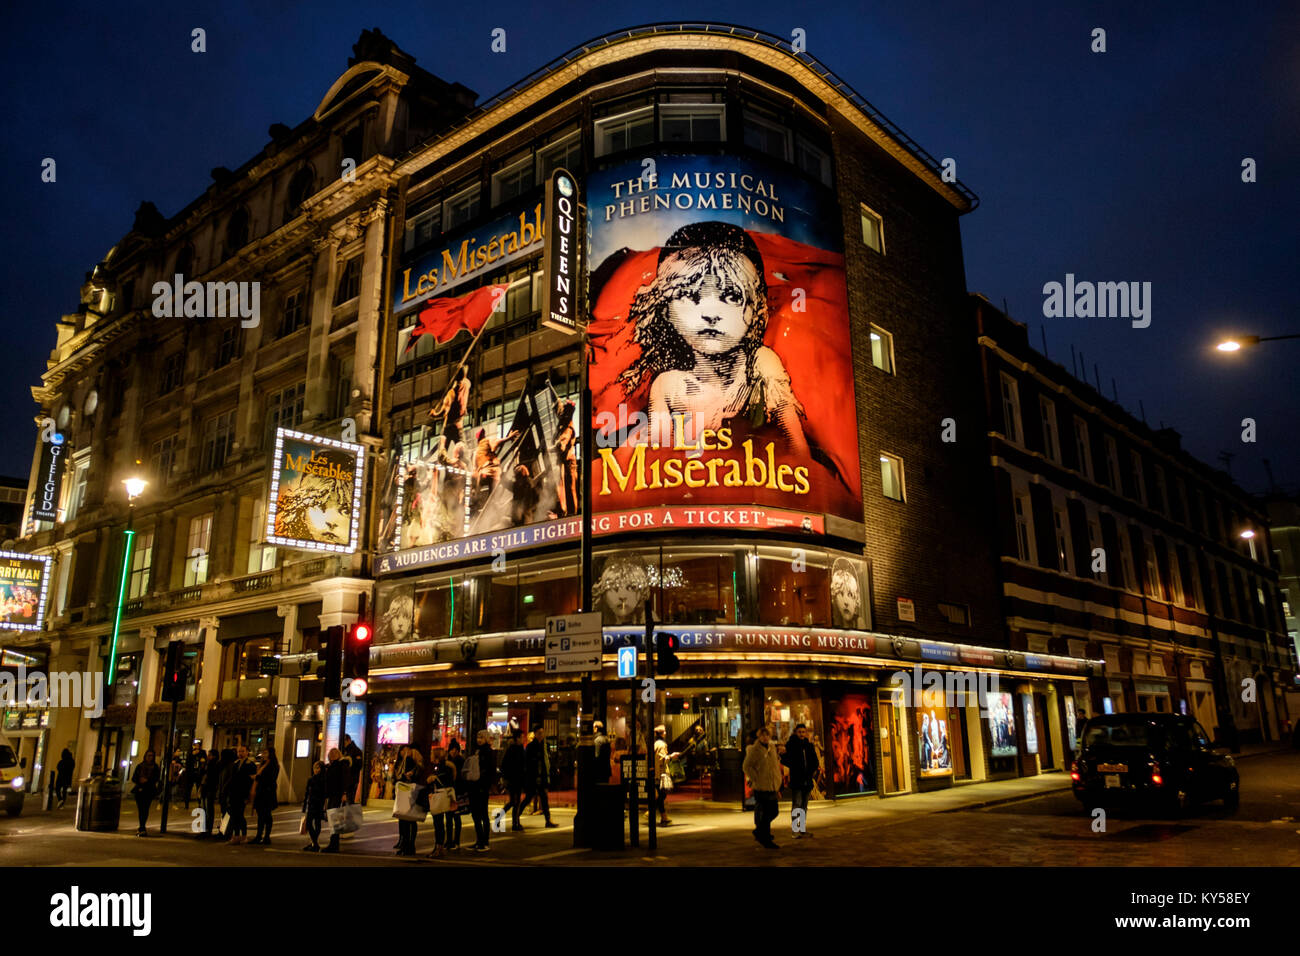 Les Misérables, Queens Theatre, Shaftesbury Avenue, London, UK - Stock Image